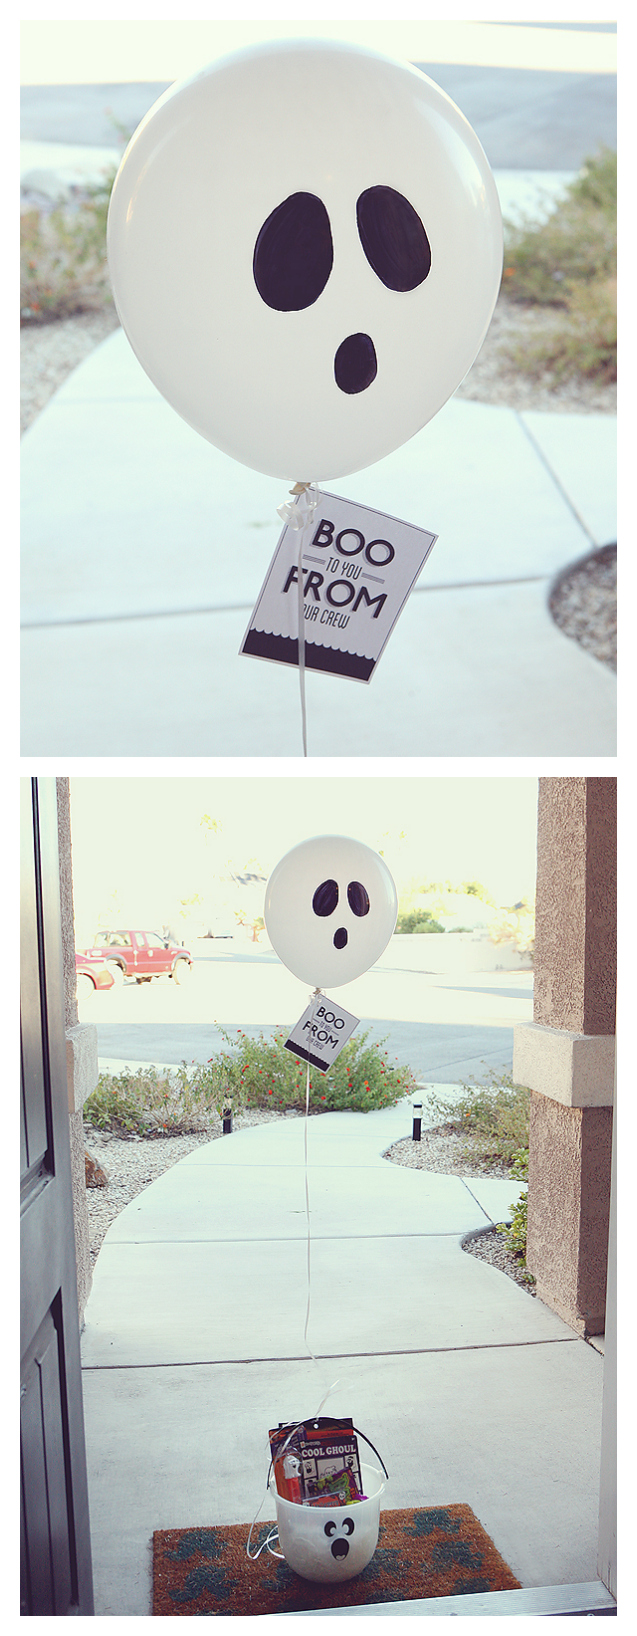 Boo to You - Draw a simple ghost face on the balloon with a Sharpie, then fill your bucket with all kinds of Halloween goodies. Attach the free printable tag to the balloon and tie onto the bucket.